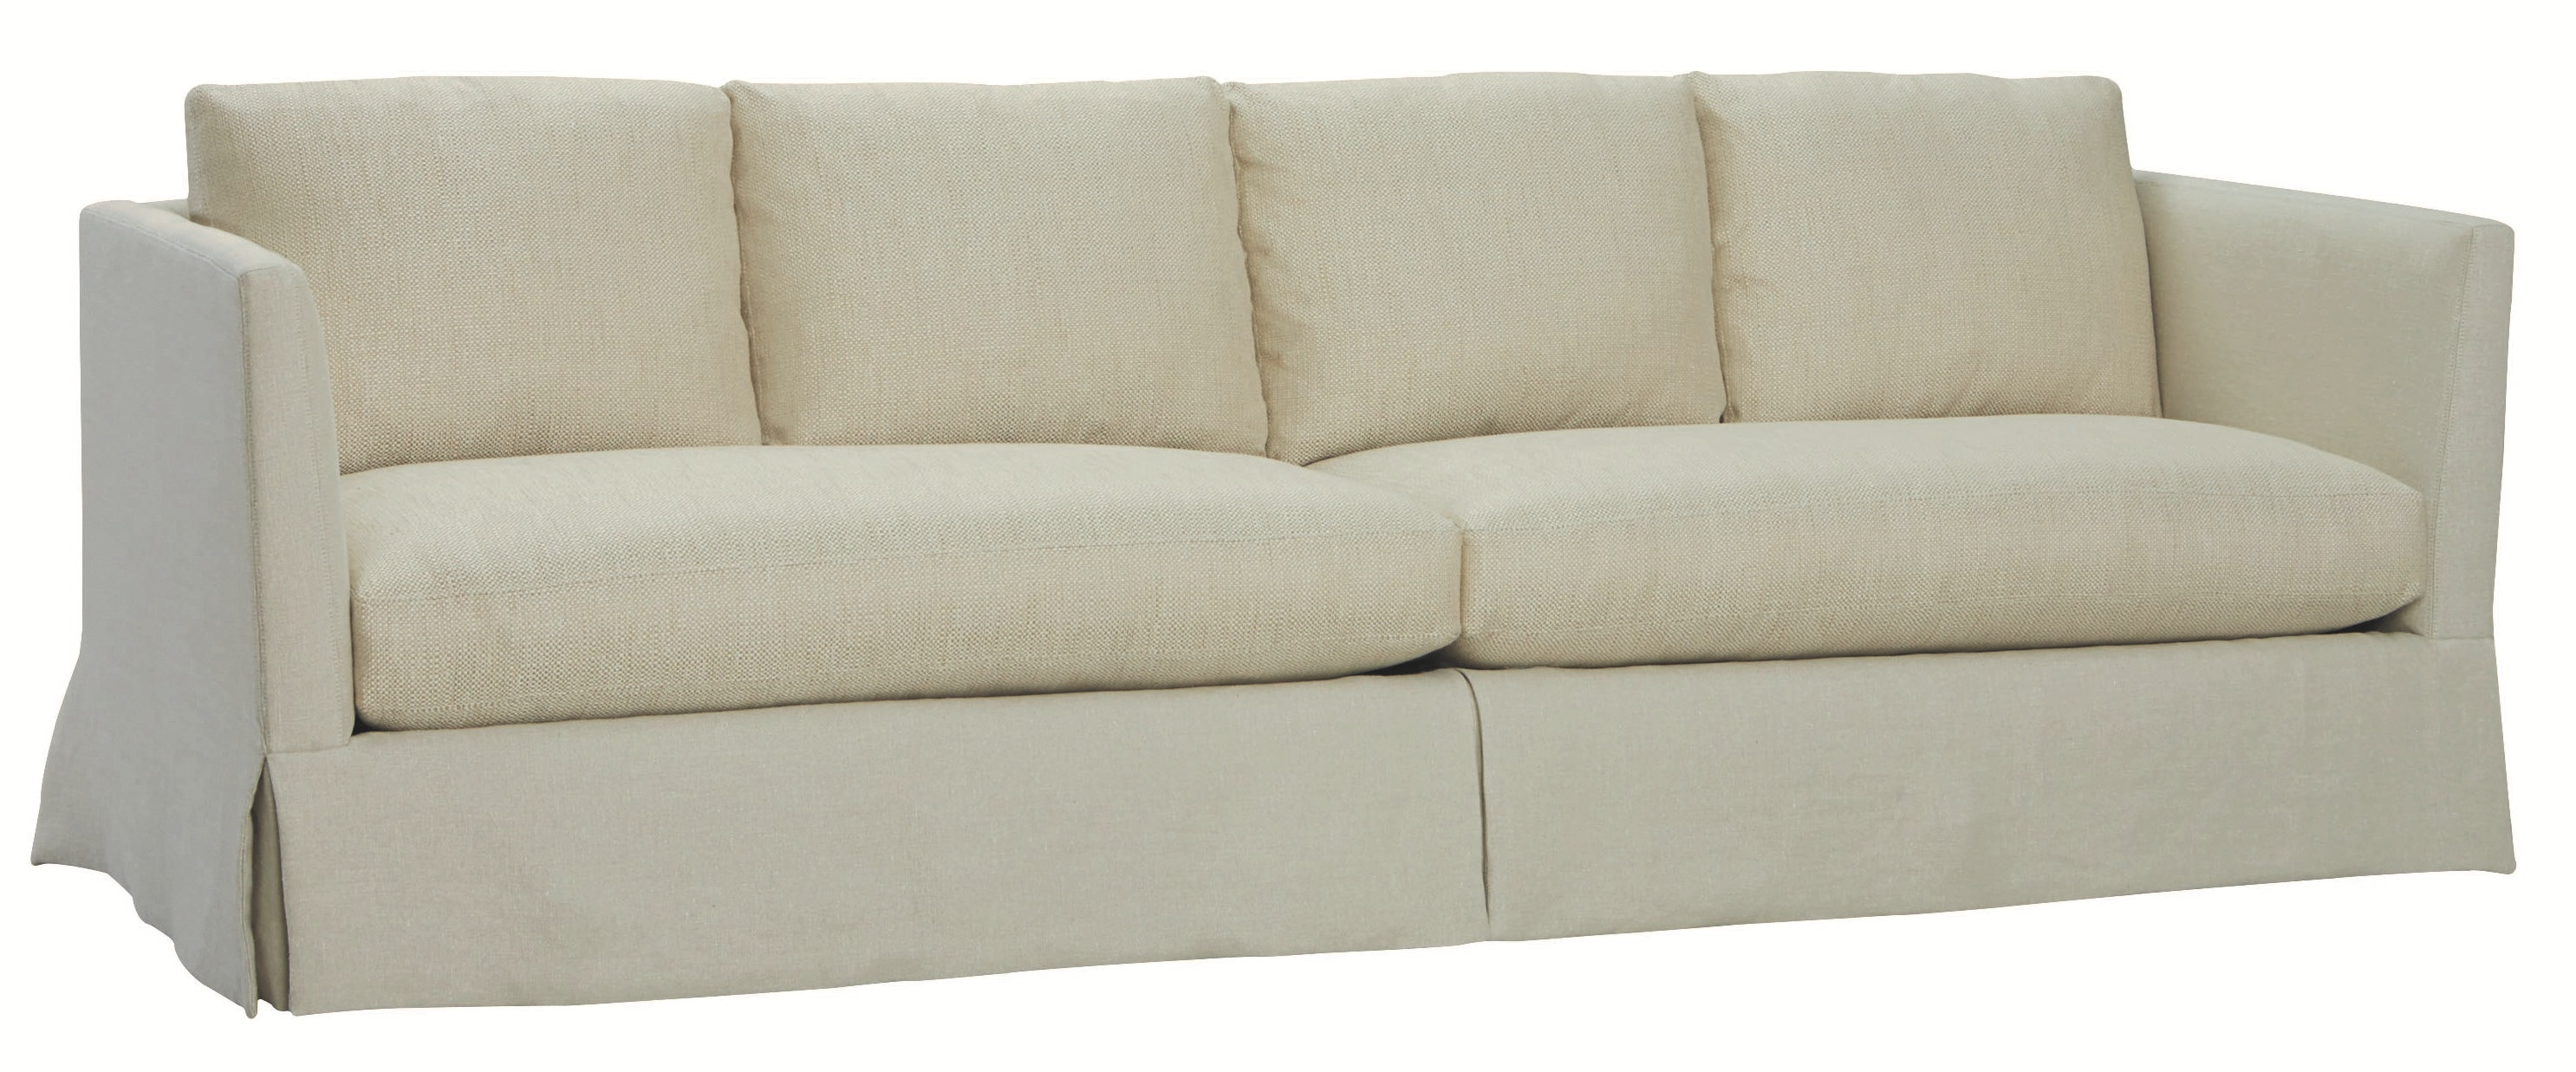 lee industries sofa prices chesterfield gumtree brisbane living room extra long 3381 44 toms